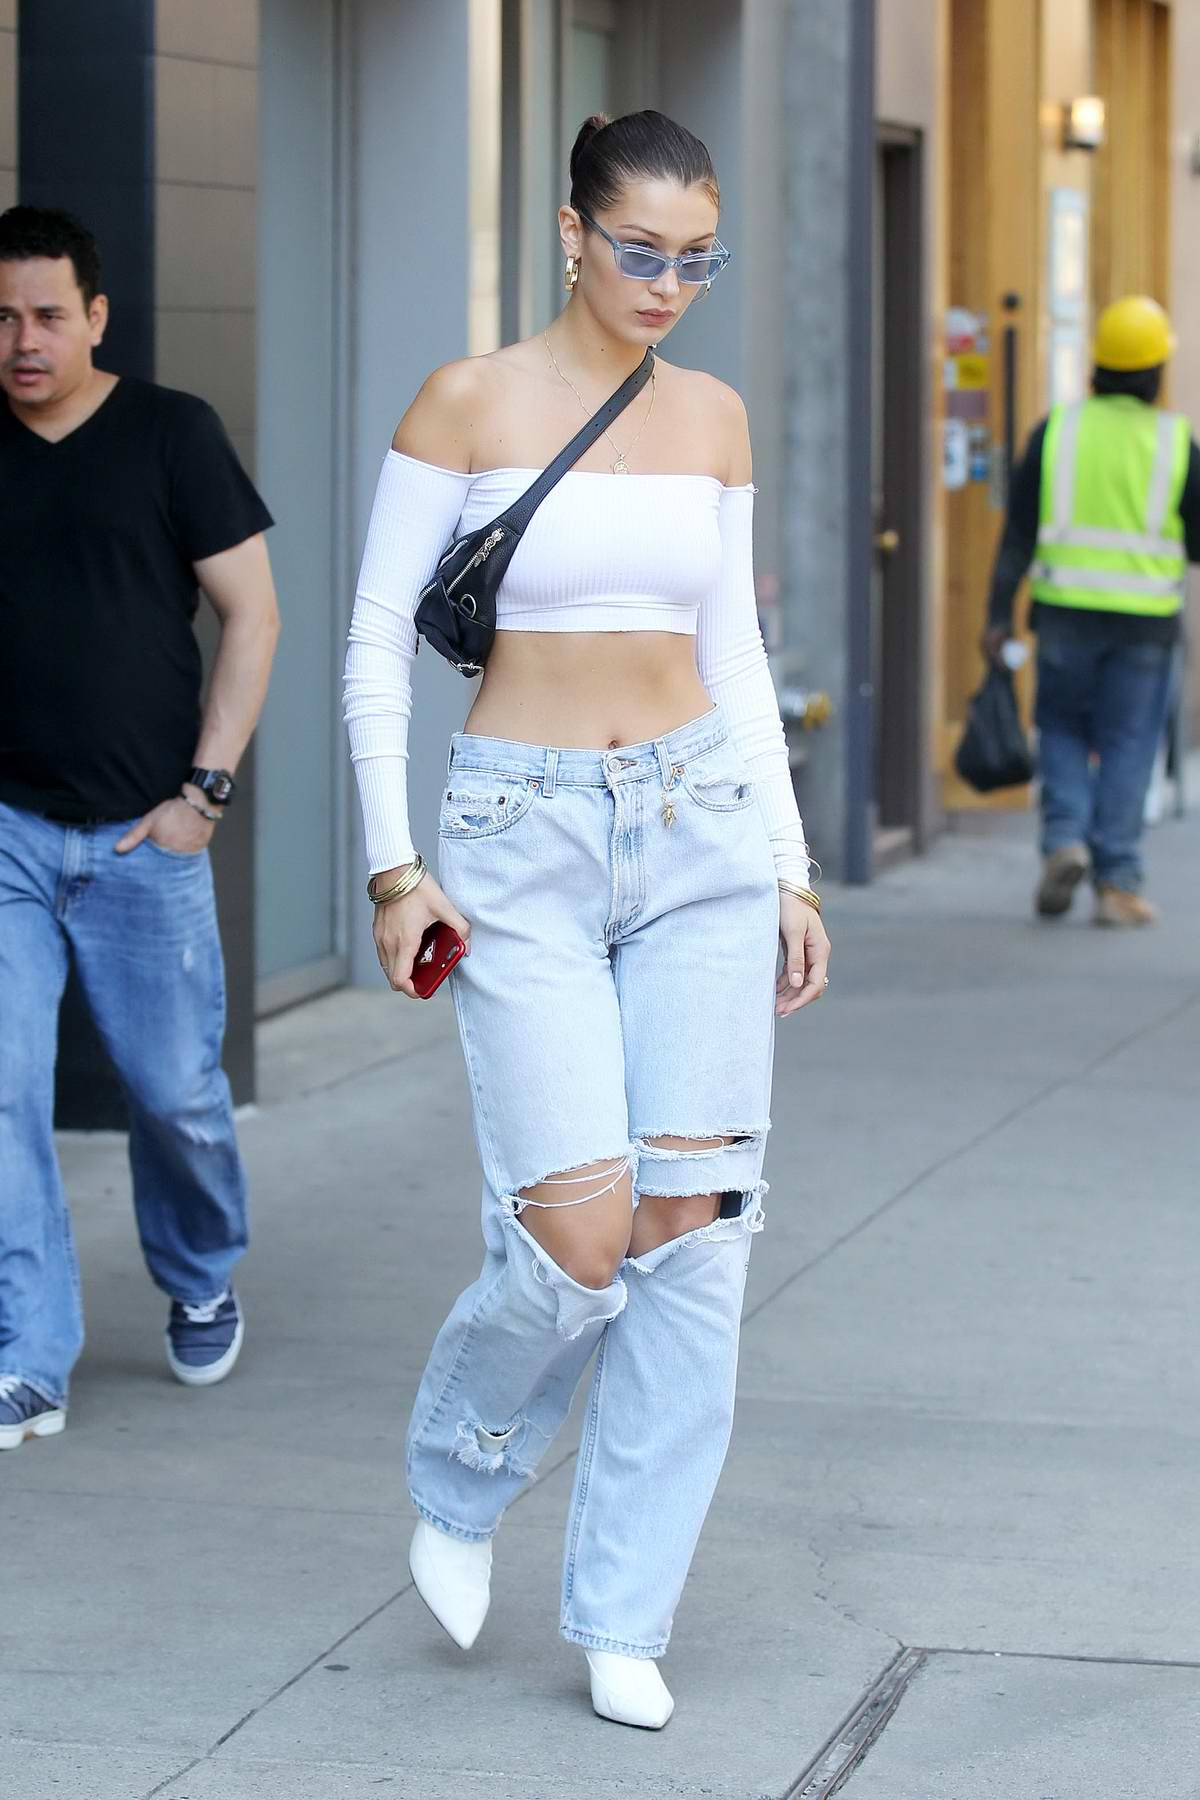 Bella Hadid rocking a White Top and Ripped Jeans while out in New York